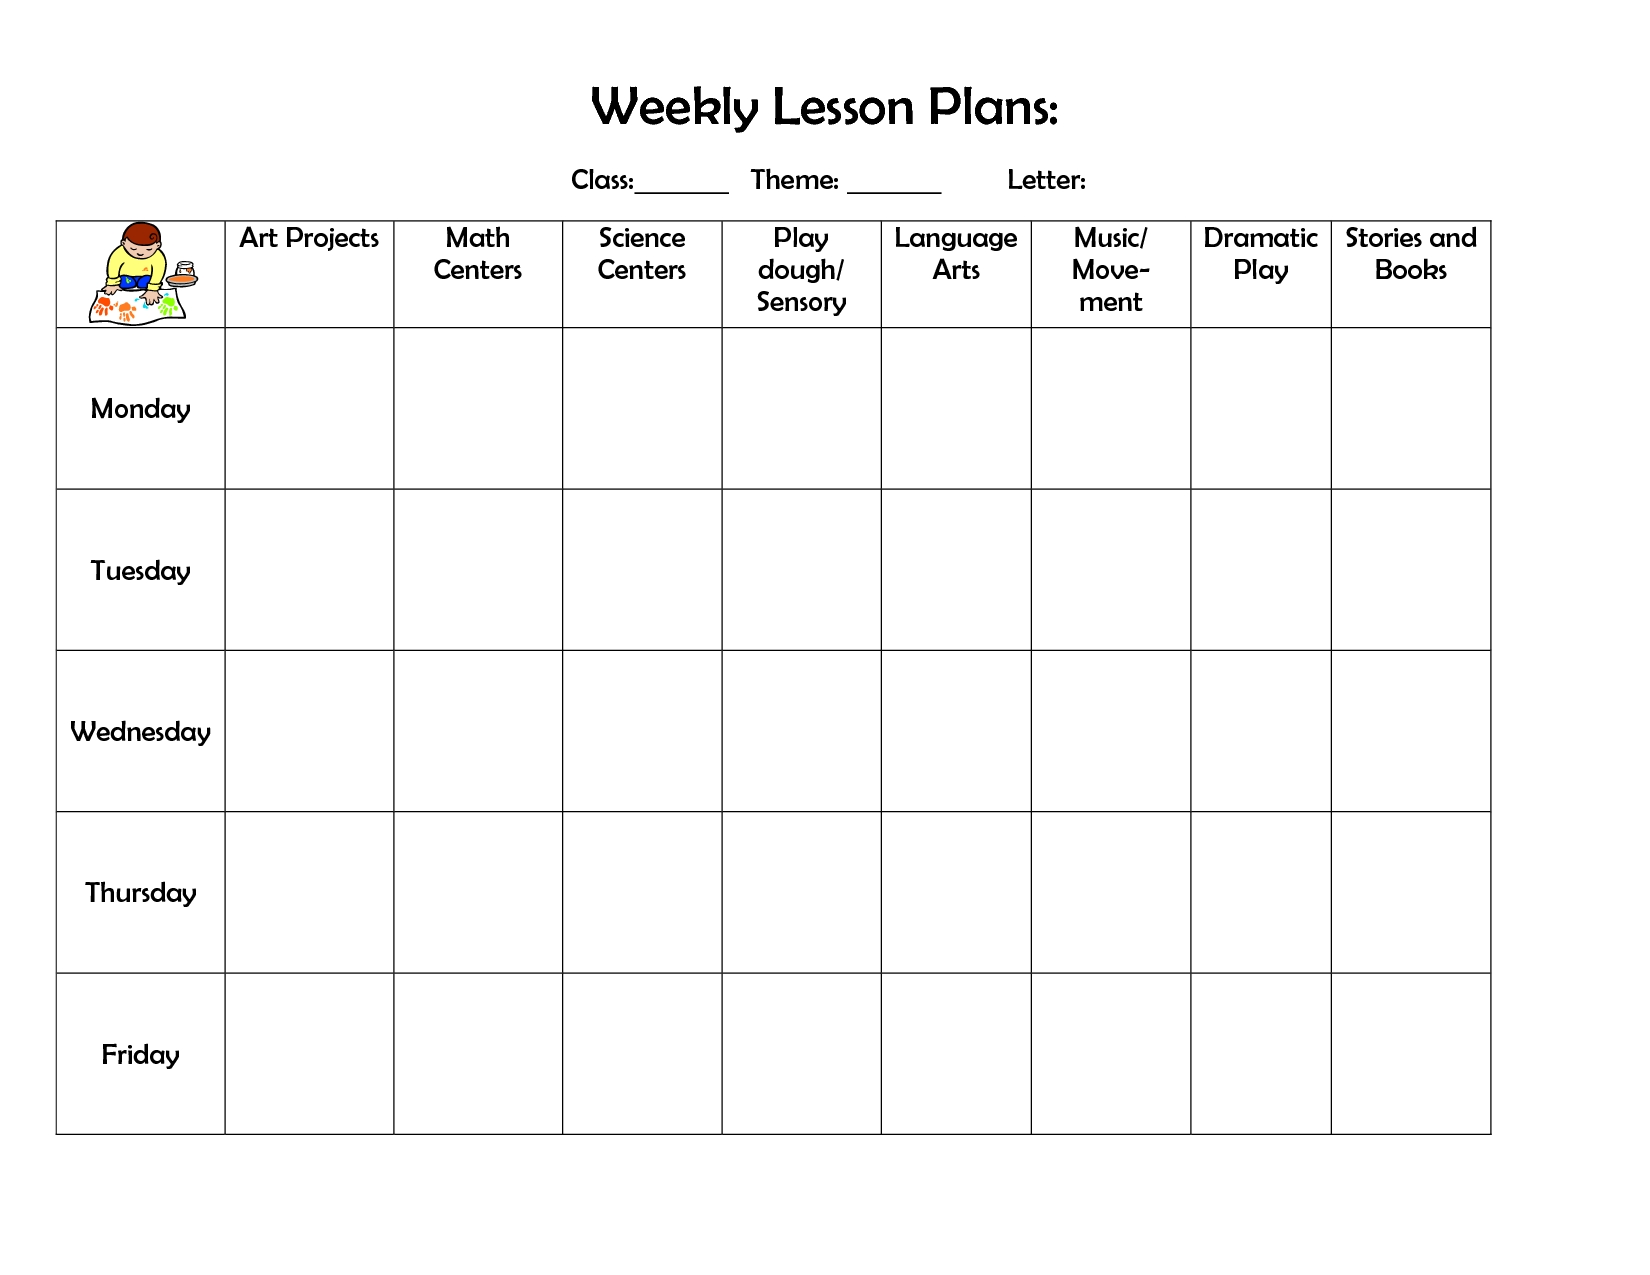 Weekly Lesson Plan | Weekly Lesson Plan Template, Preschool